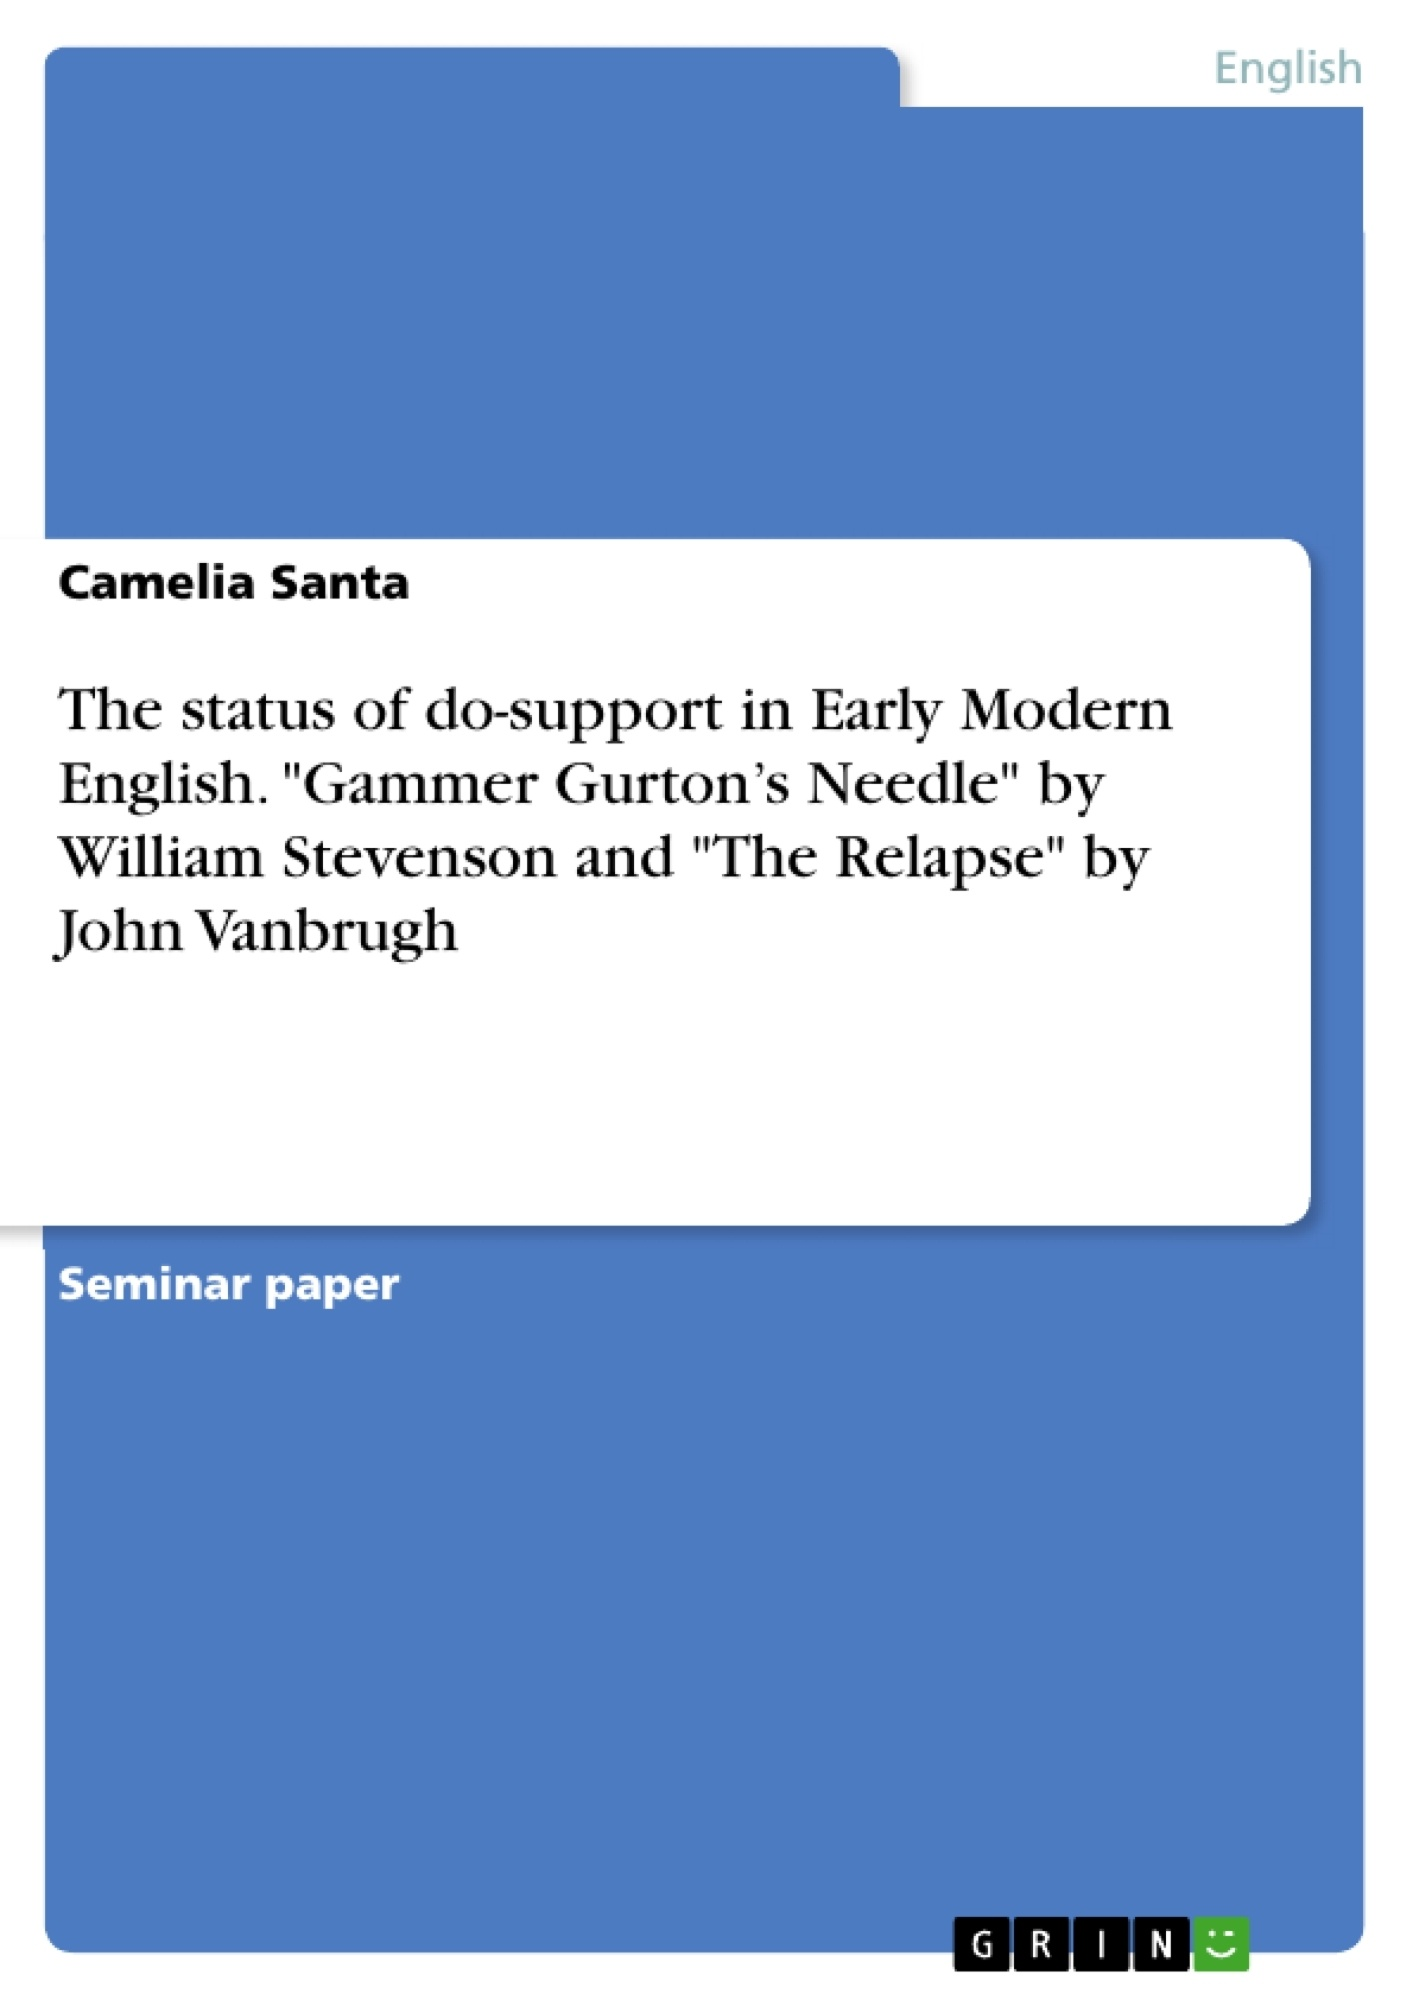 """Title: The status of do-support in Early Modern English. """"Gammer Gurton's Needle"""" by William Stevenson and """"The Relapse"""" by John Vanbrugh"""